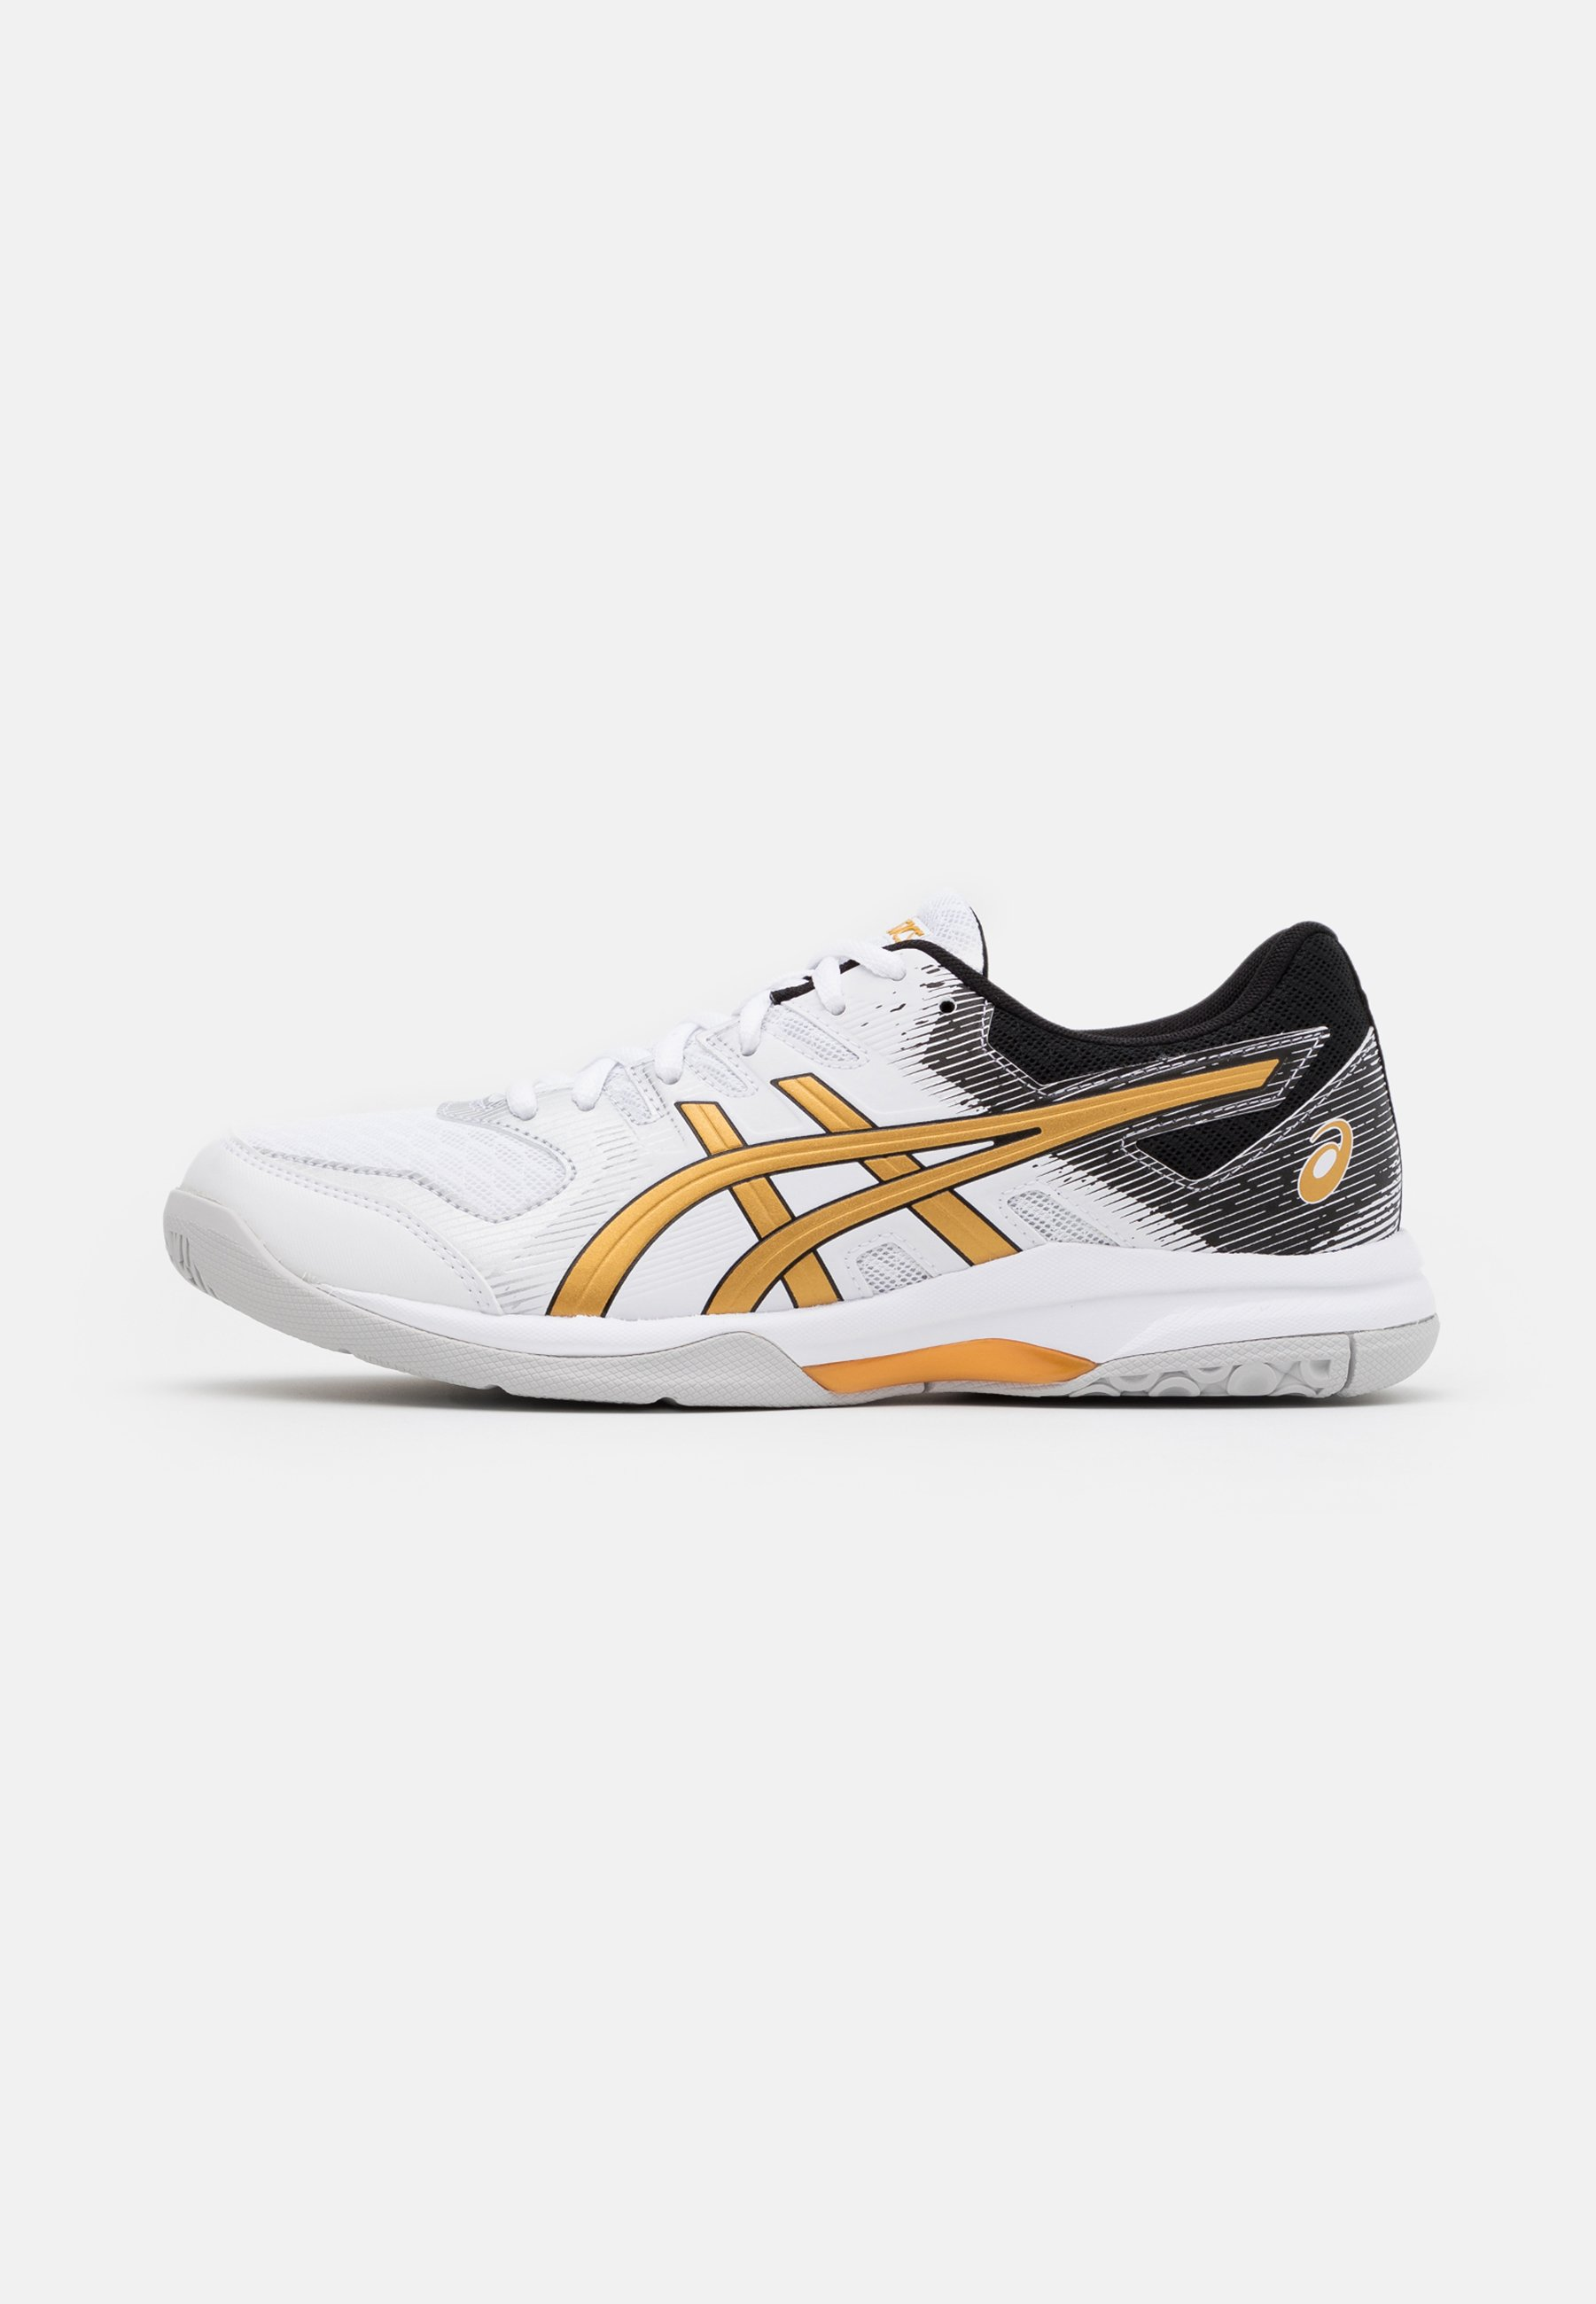 Asics Gel Rocket 9 Volleyball Shoes White Pure Gold Zalando Co Uk